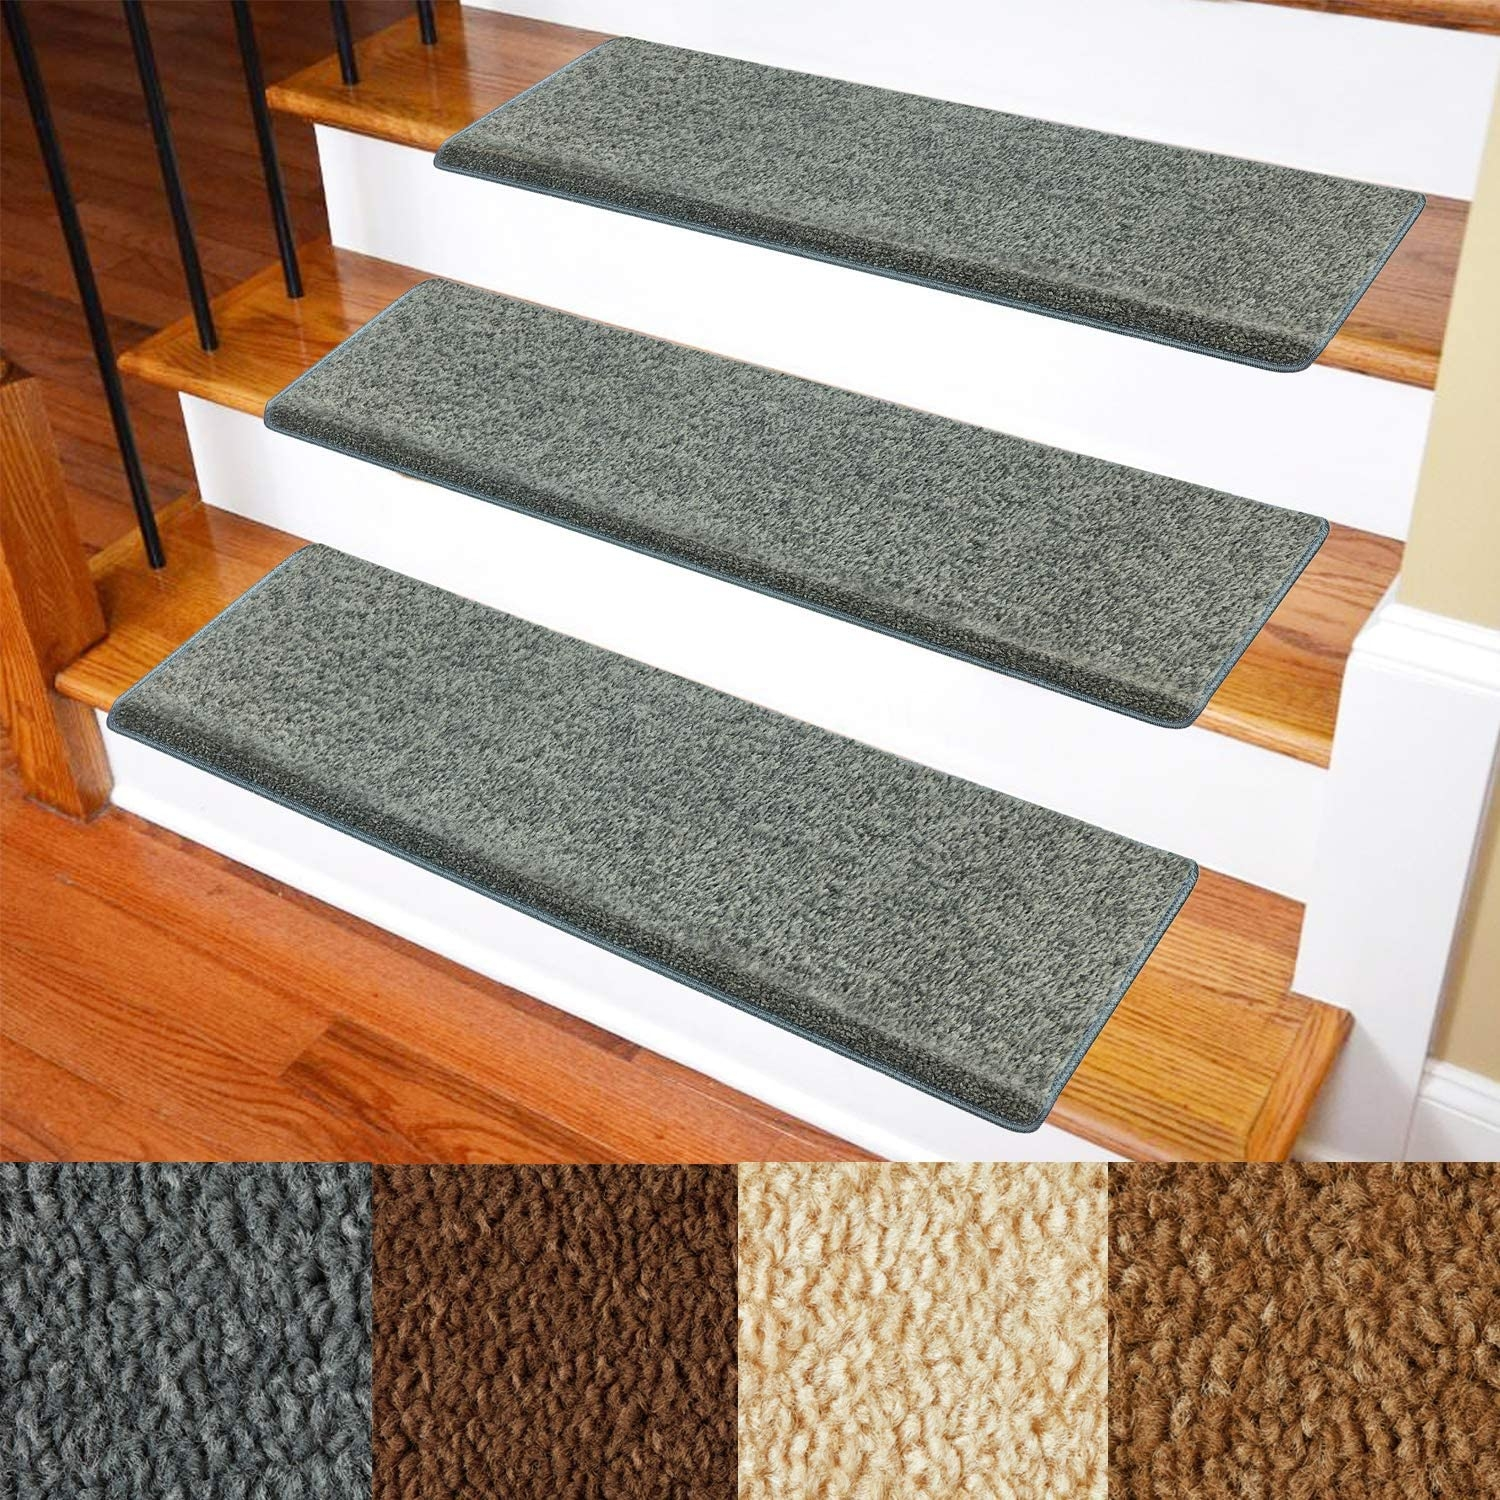 Carpet Stair Treads – Non Slip Bullnose Carpet For Stairs – Indoor | Carpet Cover For Stairs | Flooring | Stylish | Cheap | Diamond Pattern | Patterned